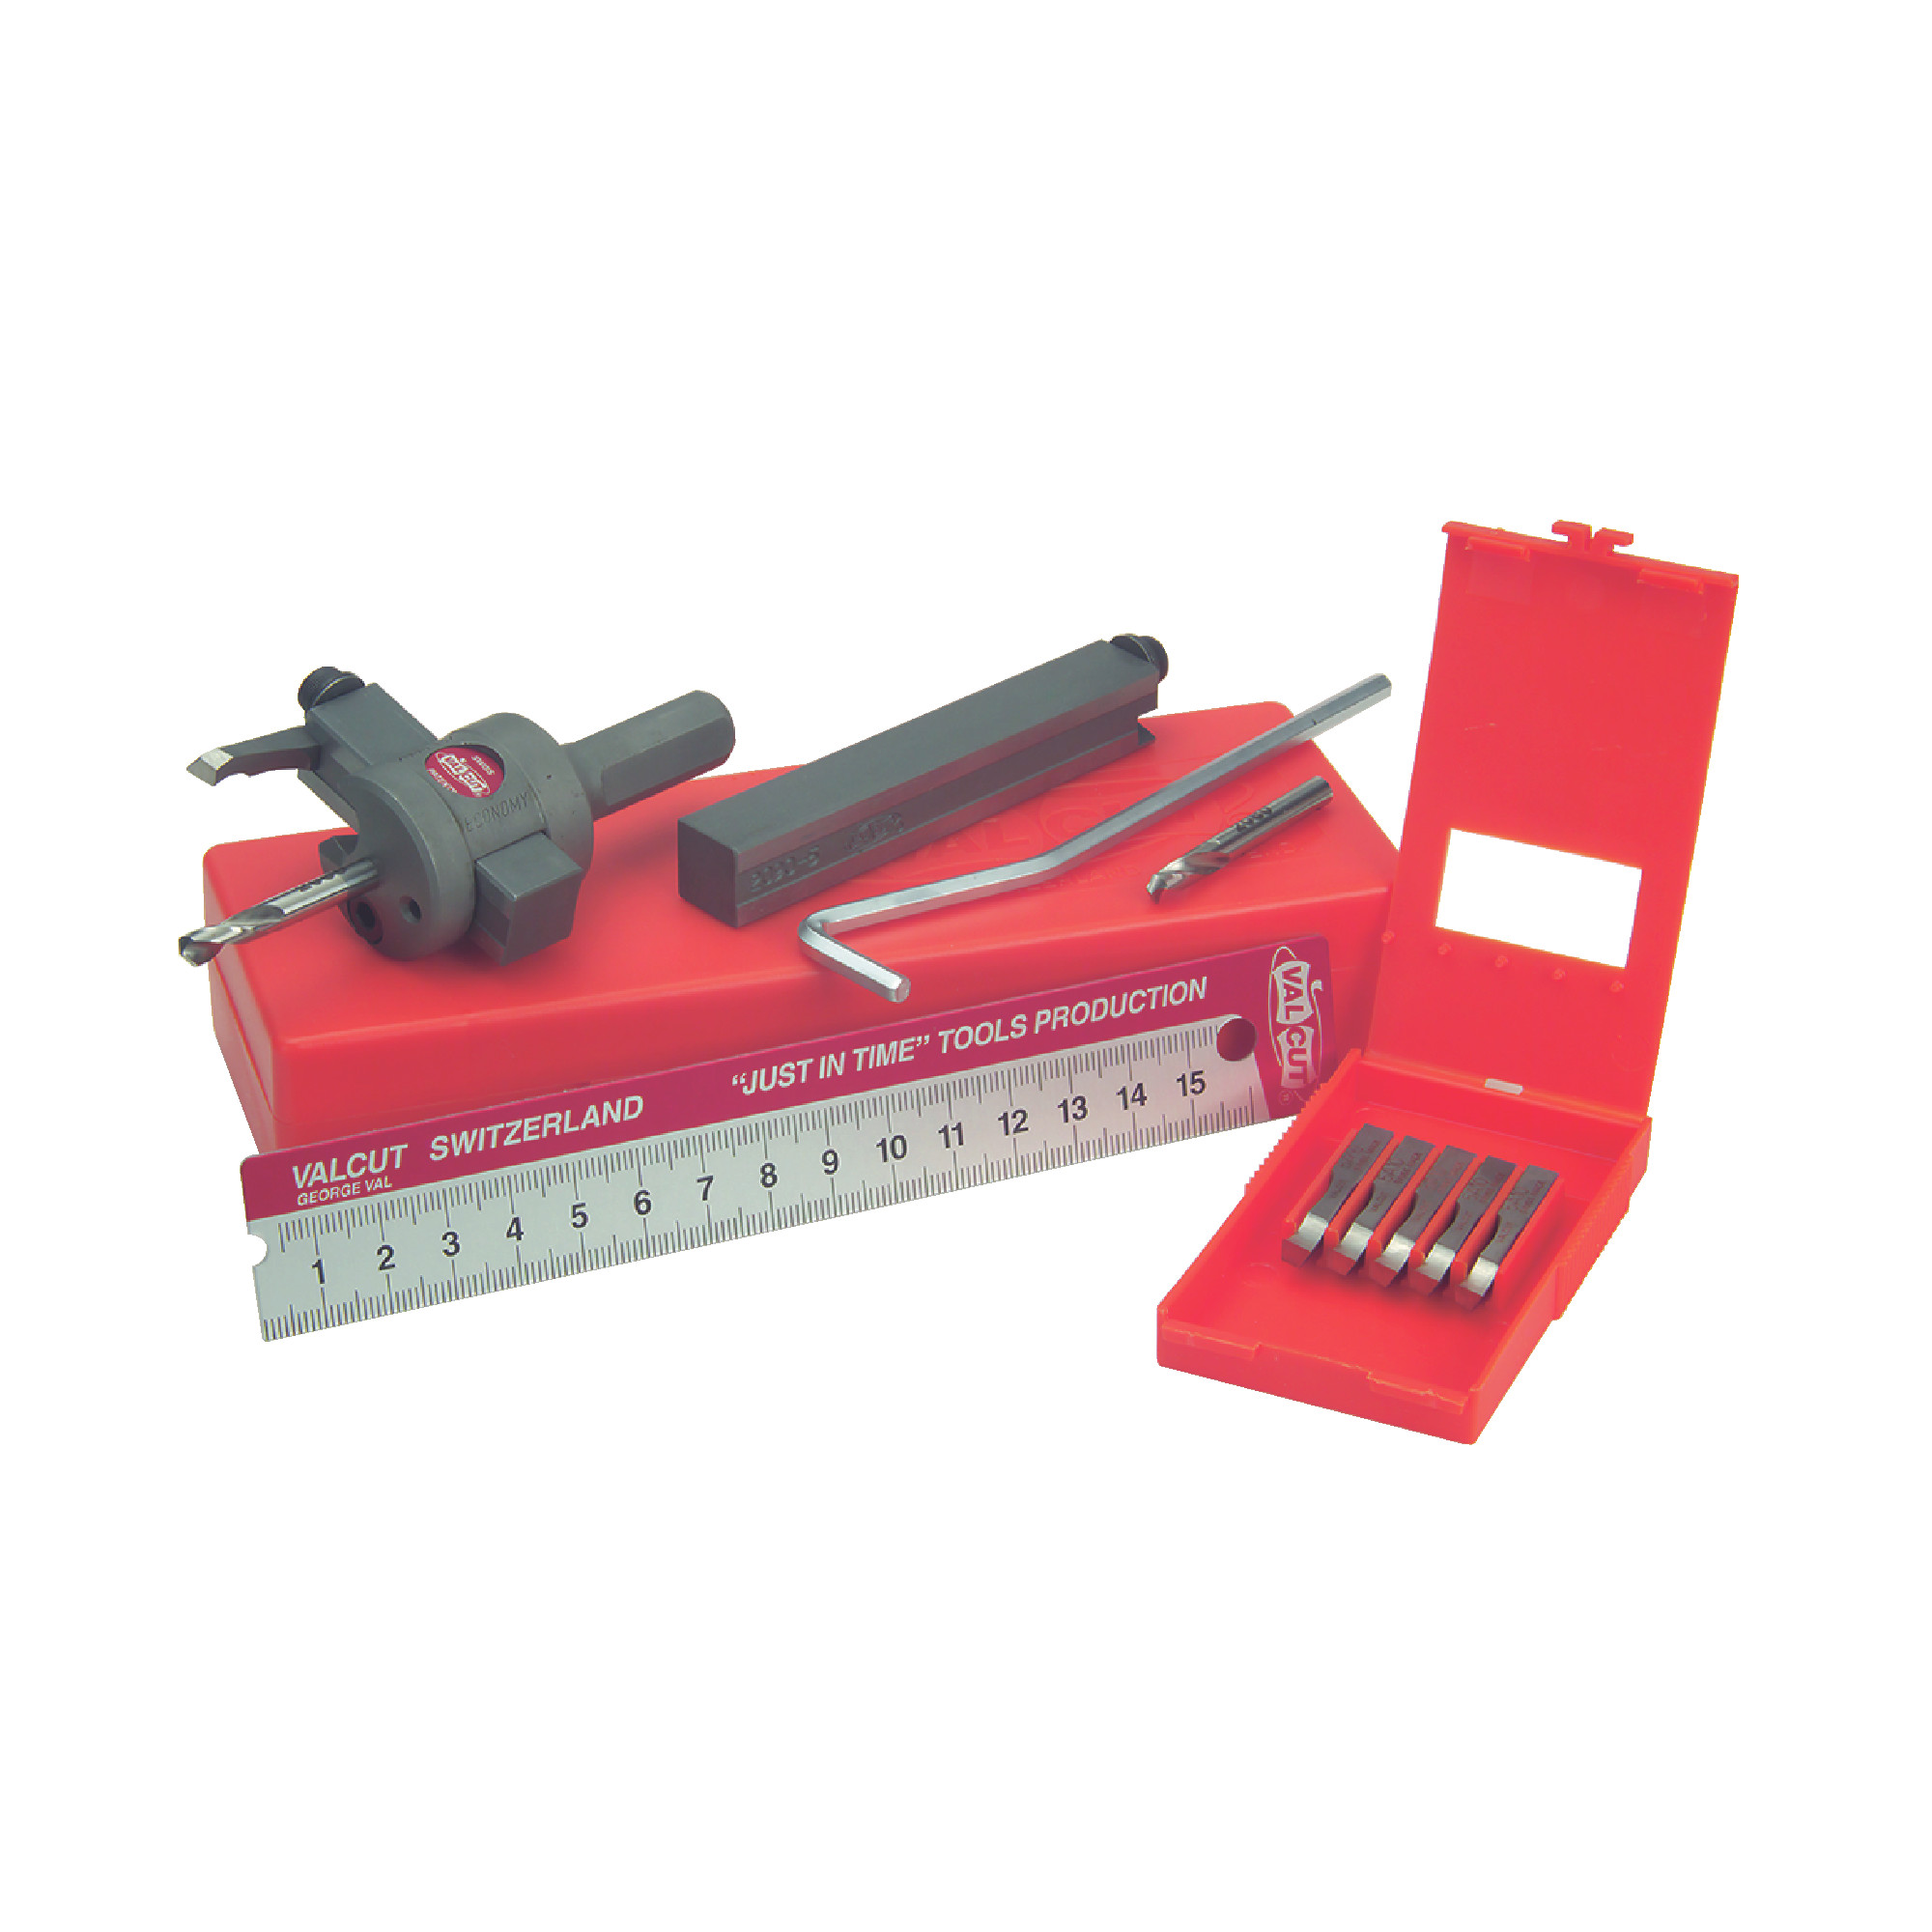 Cutting System With Removeable High Speed Steel Regrindable E Blades